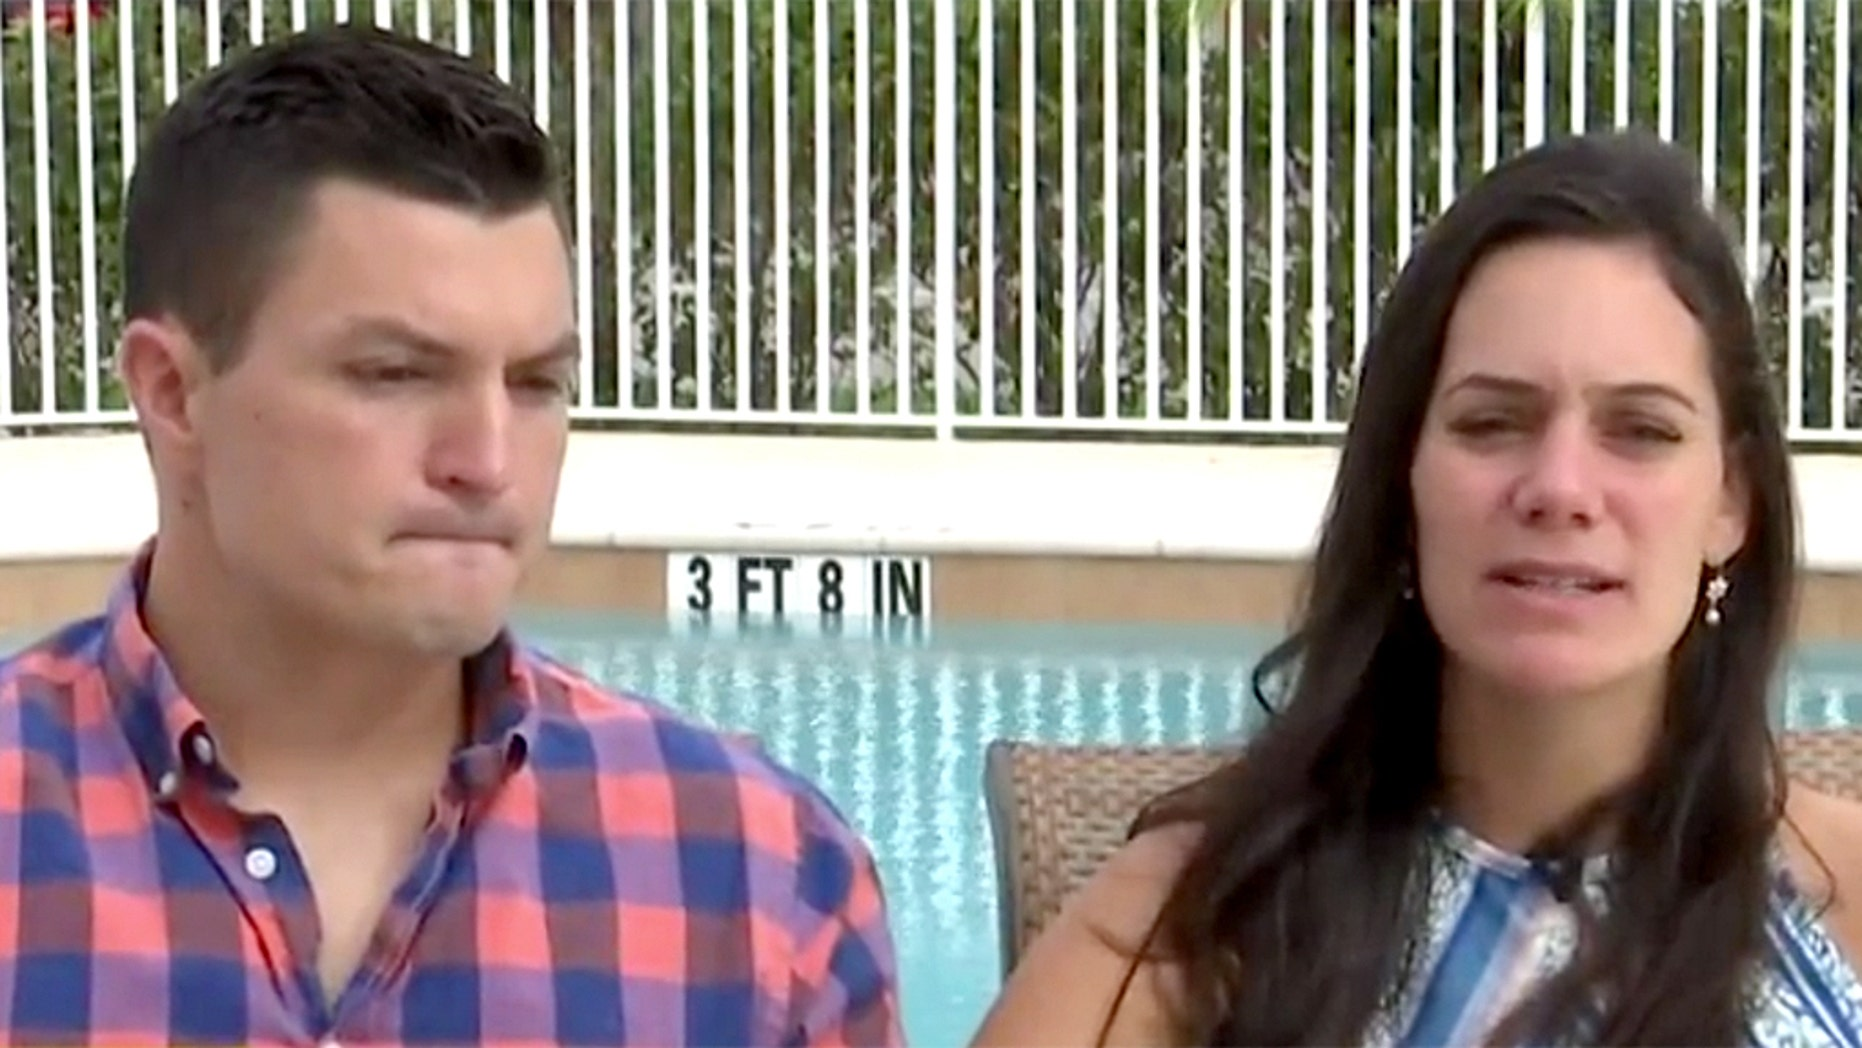 Meghan Davidson and her husband, Matt, said they weren't sure if she would be able to get pregnant again after her injuries.